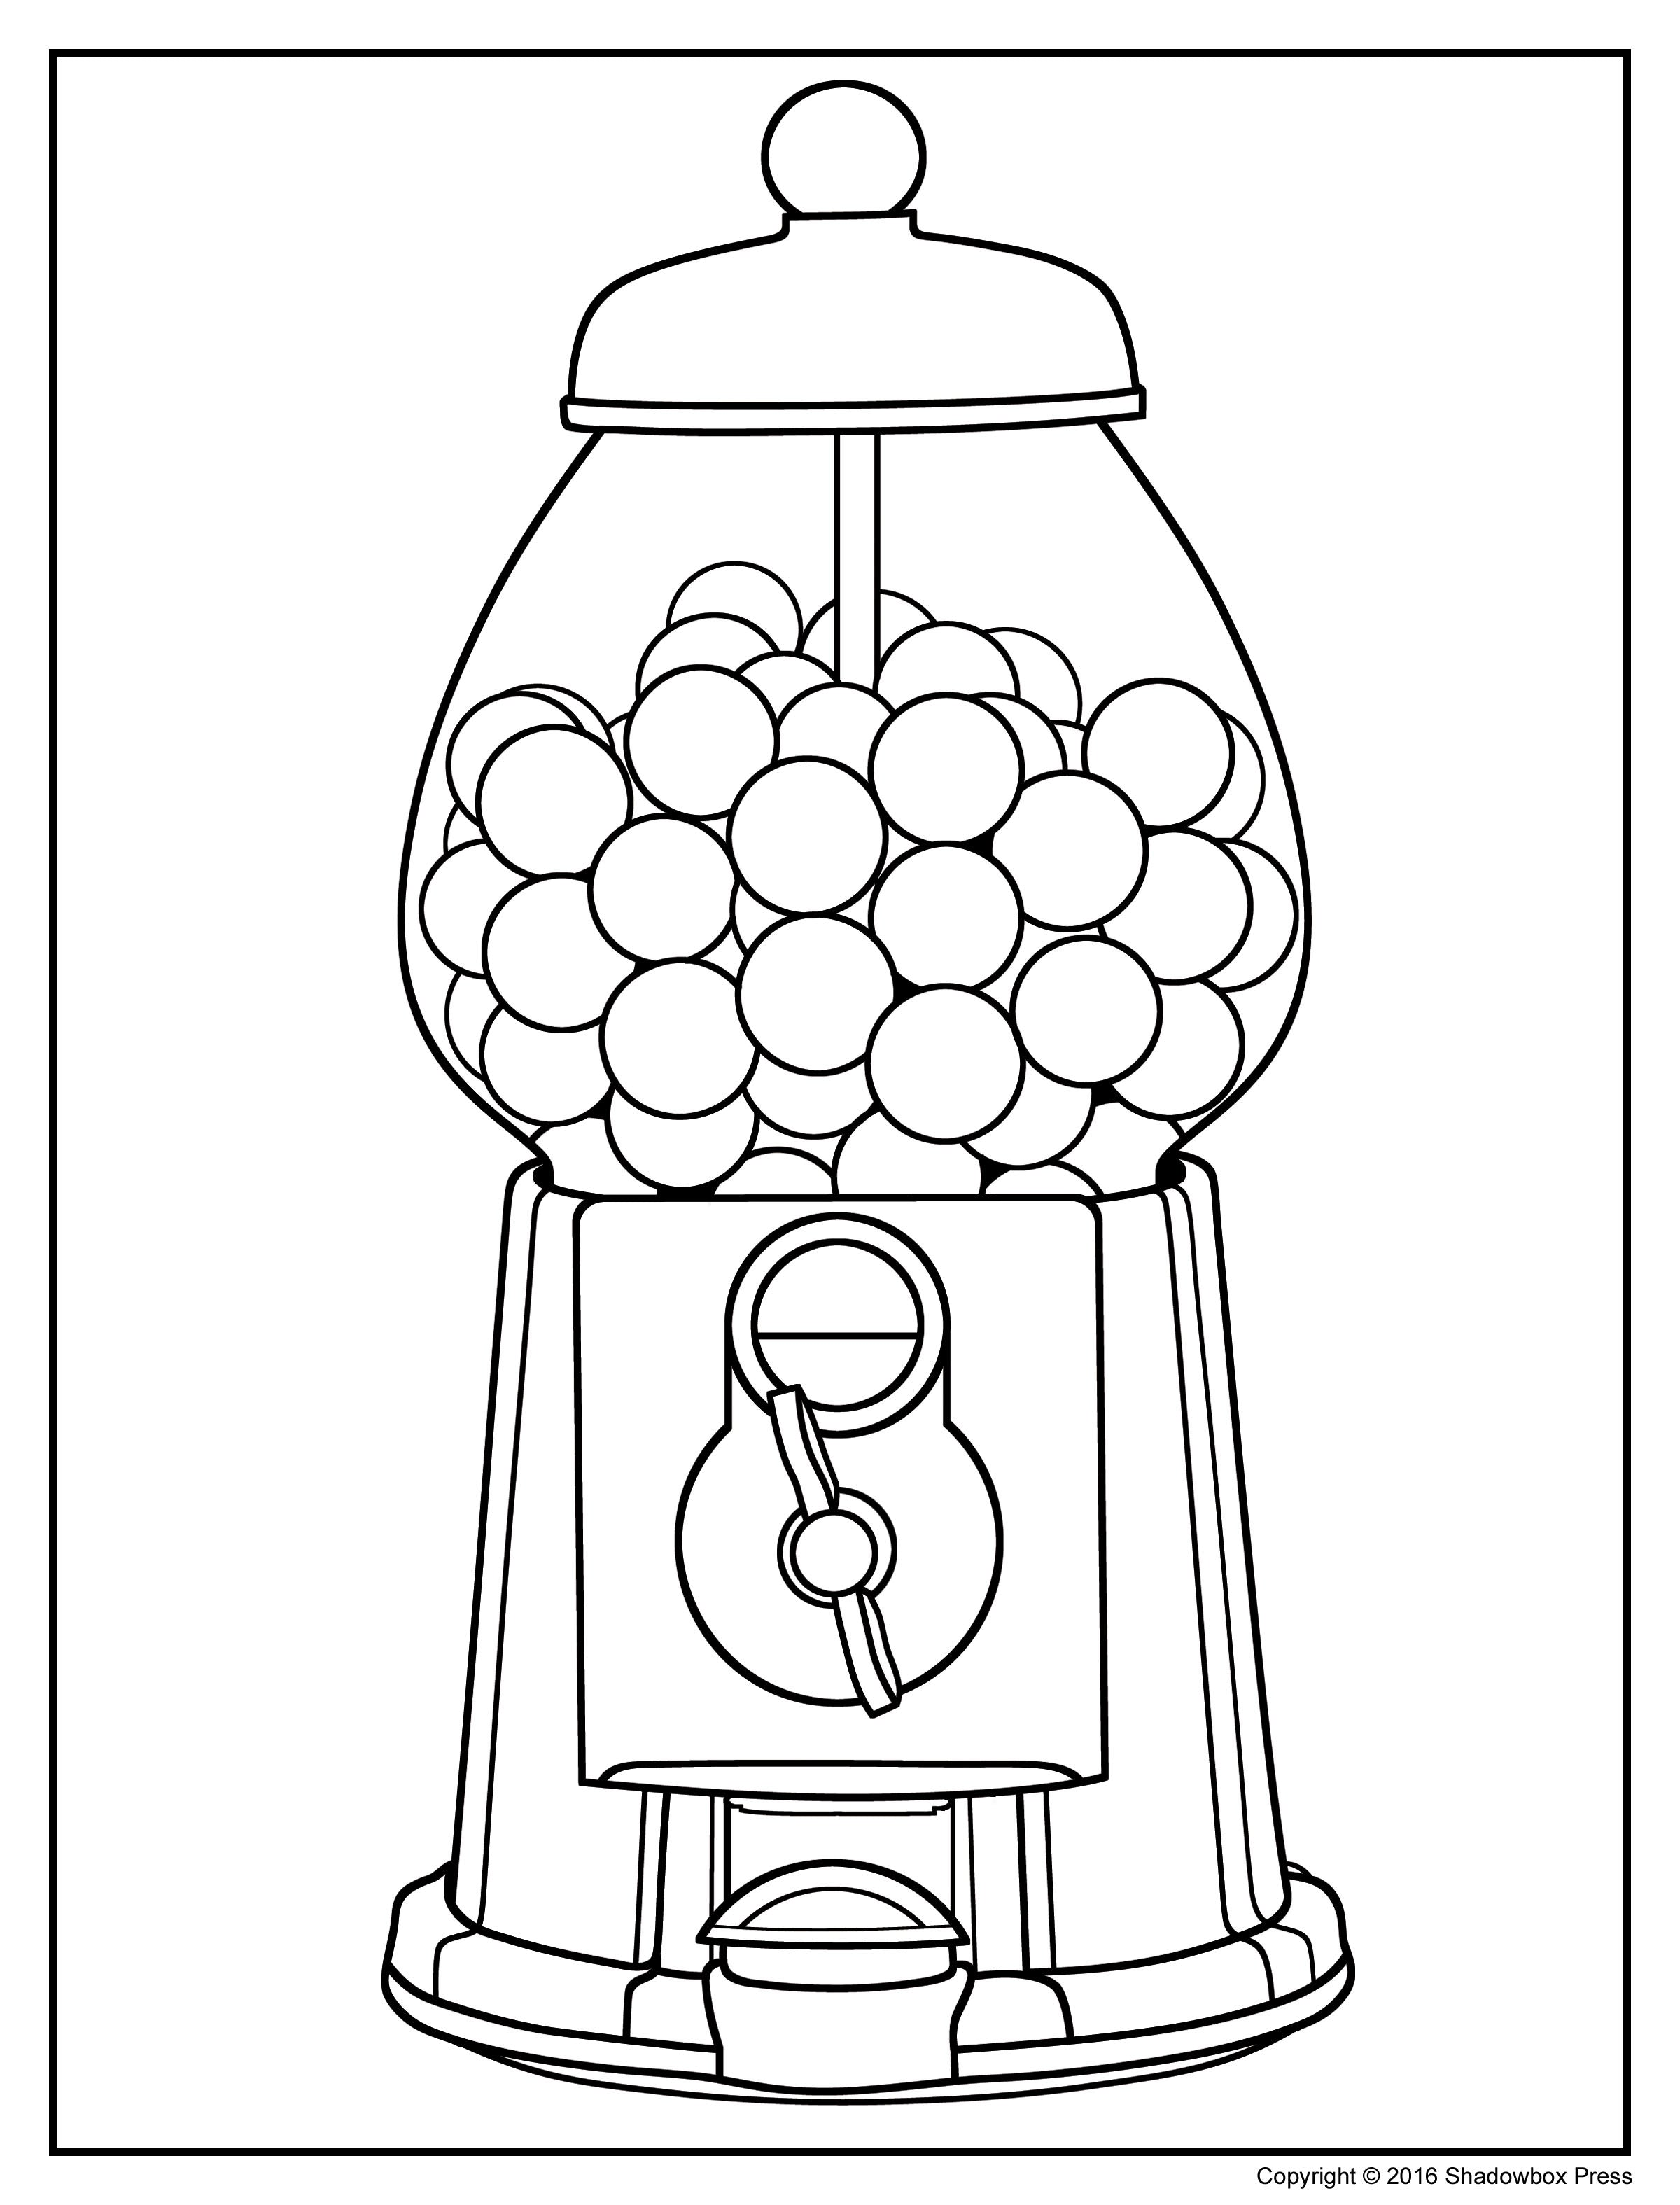 Printable Coloring Pages For Dementia : Free Downloadable Coloring Pages for Adults with Dementia Shadowbox Press